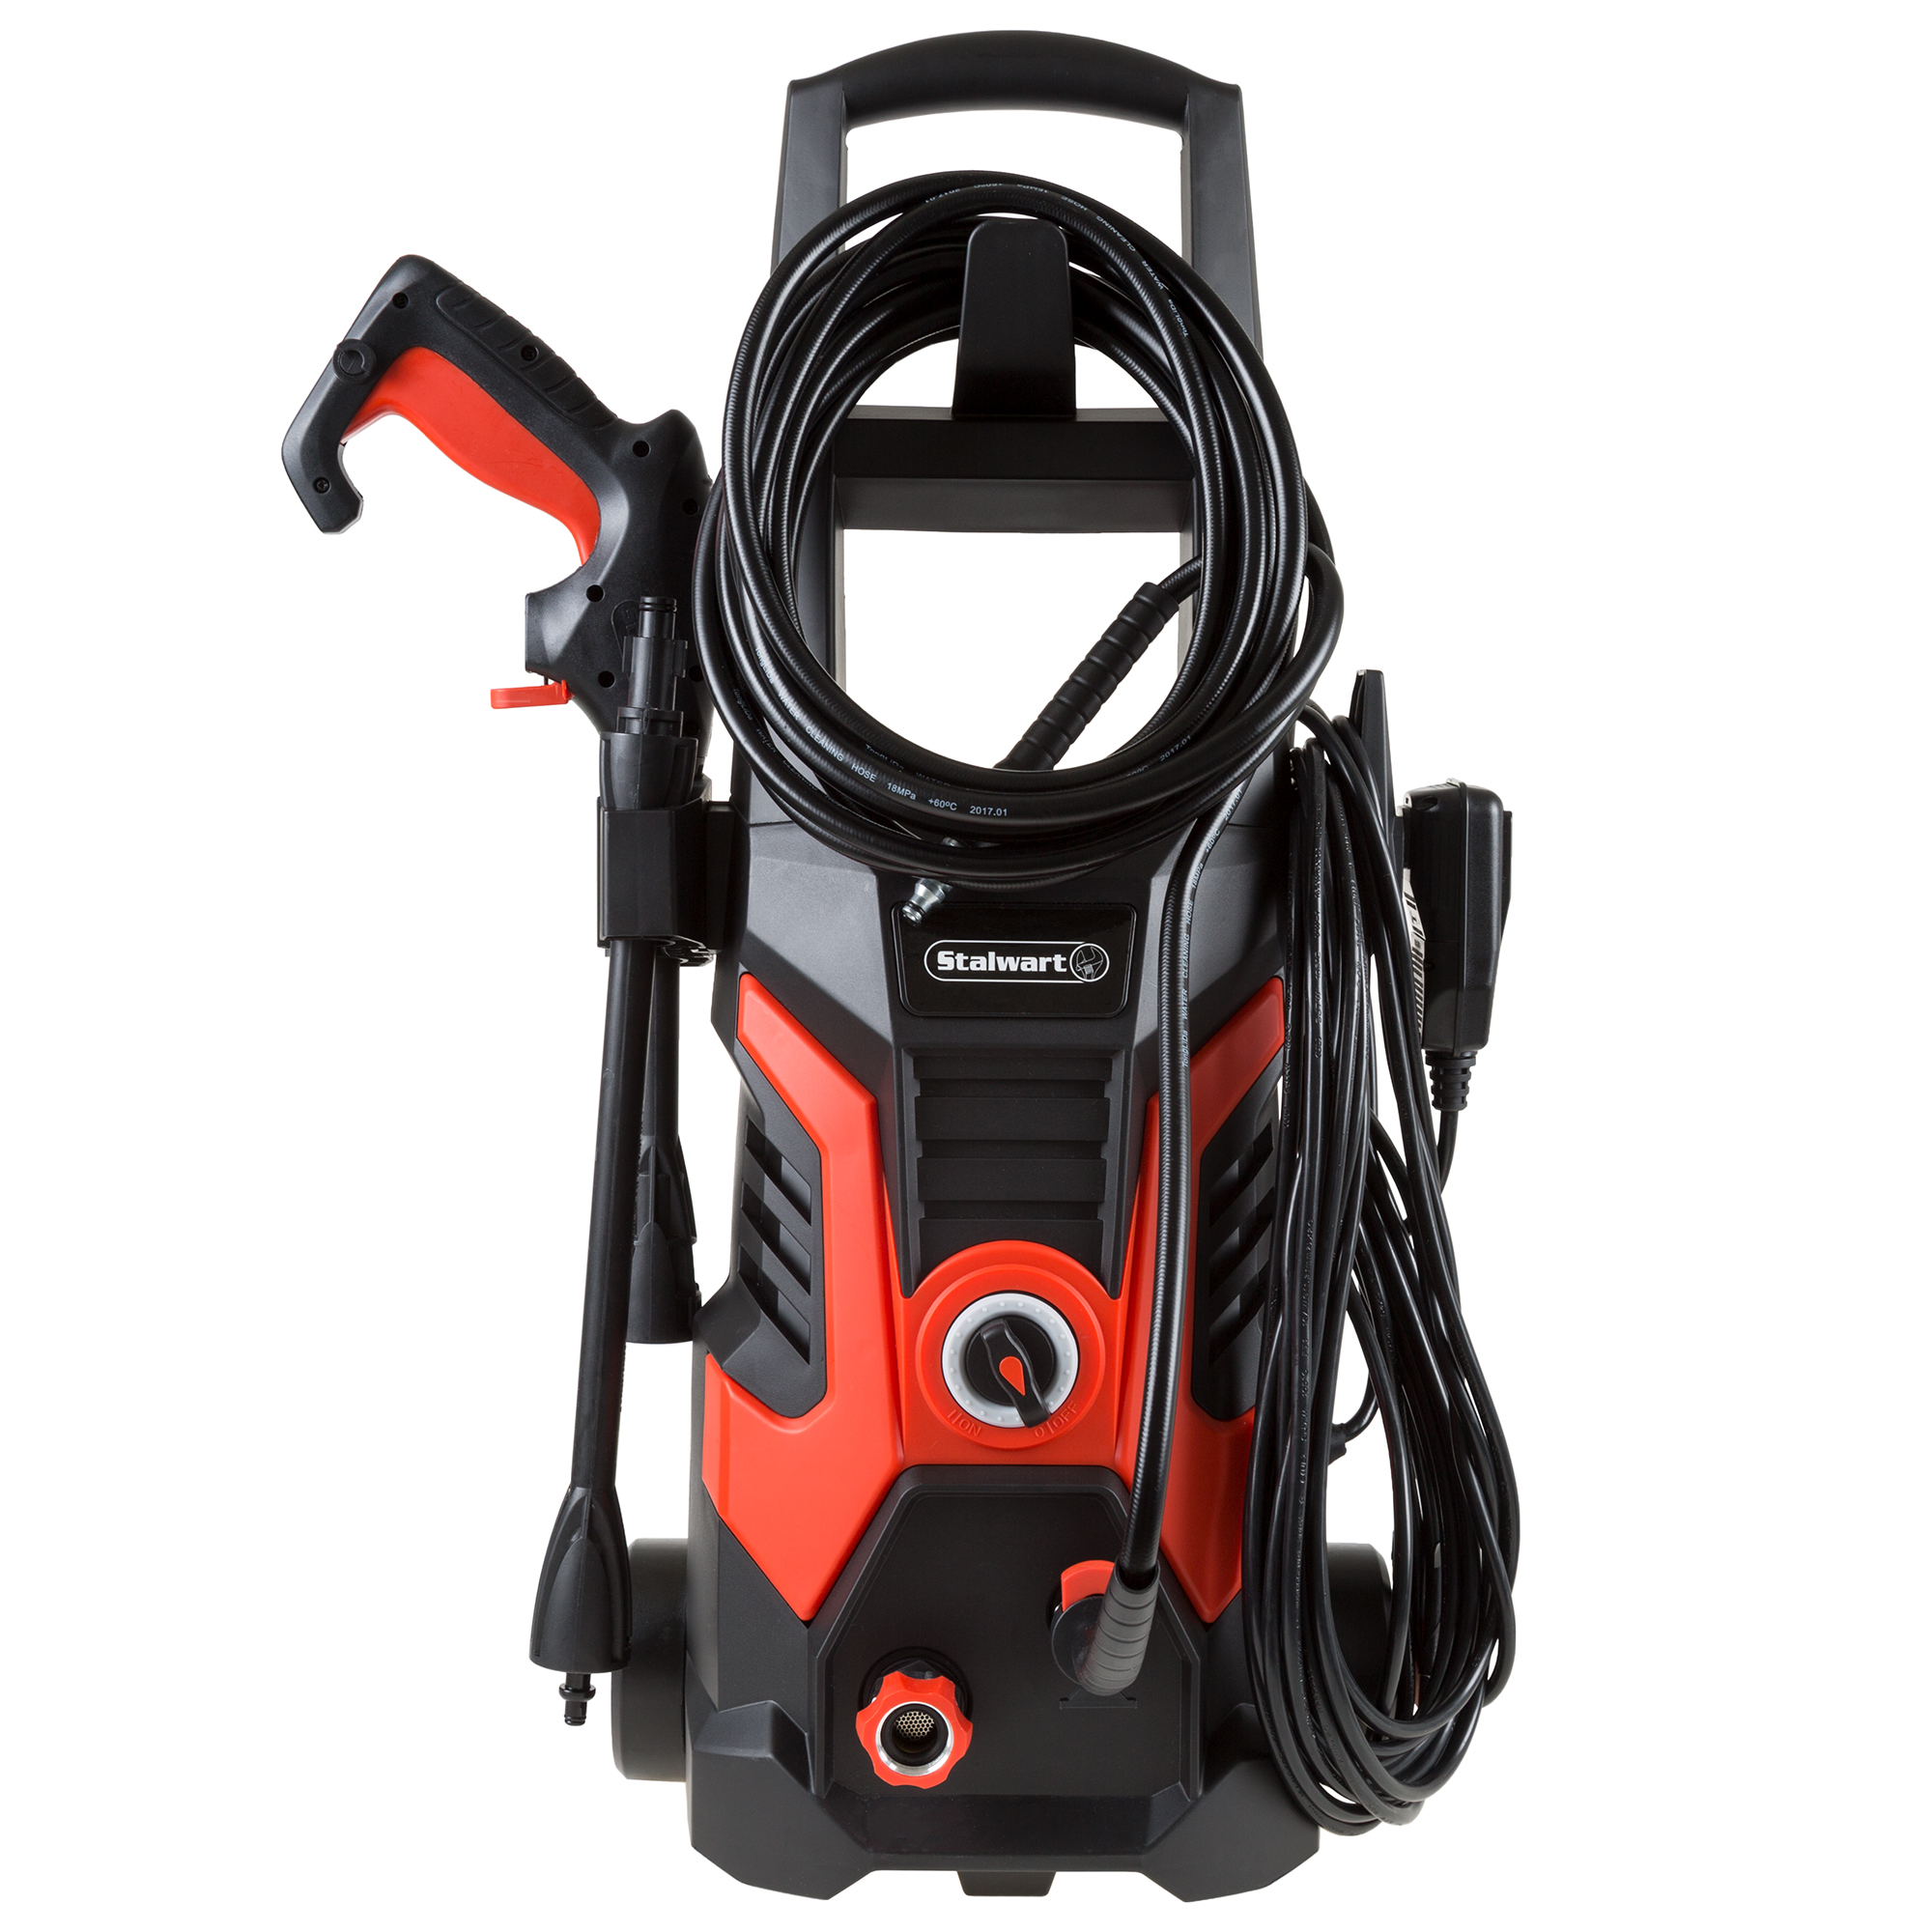 Stalwart 1500 2000 PSI, 1.35 5GPM Electric Pressure Washer (Power Washer For Cleaning Driveways,... by Trademark Global LLC